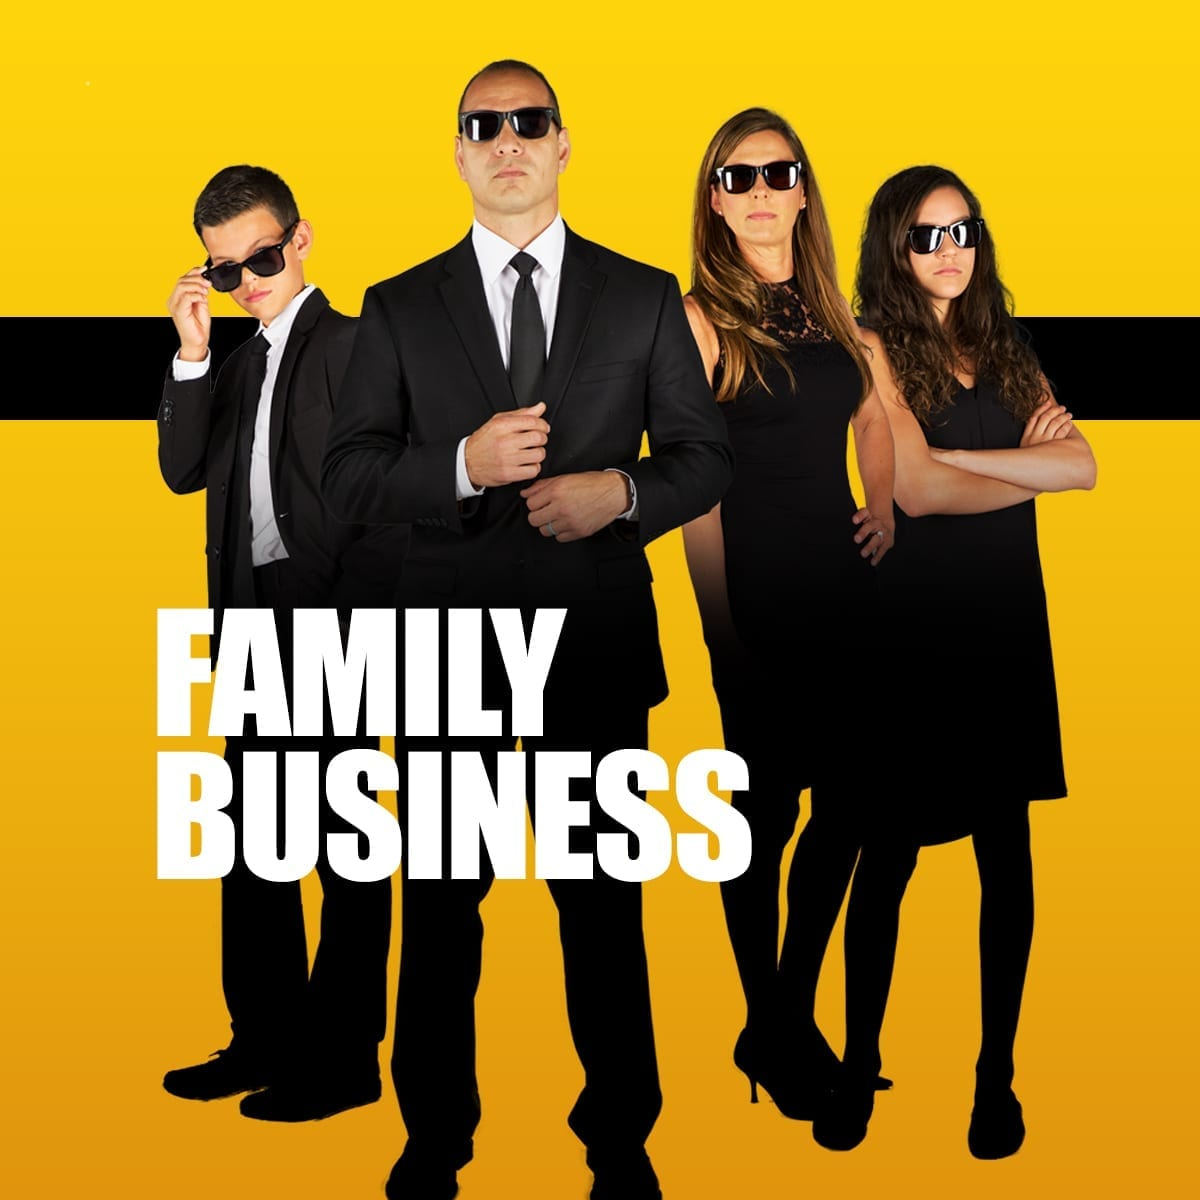 Family Business - Sermon Series on Family